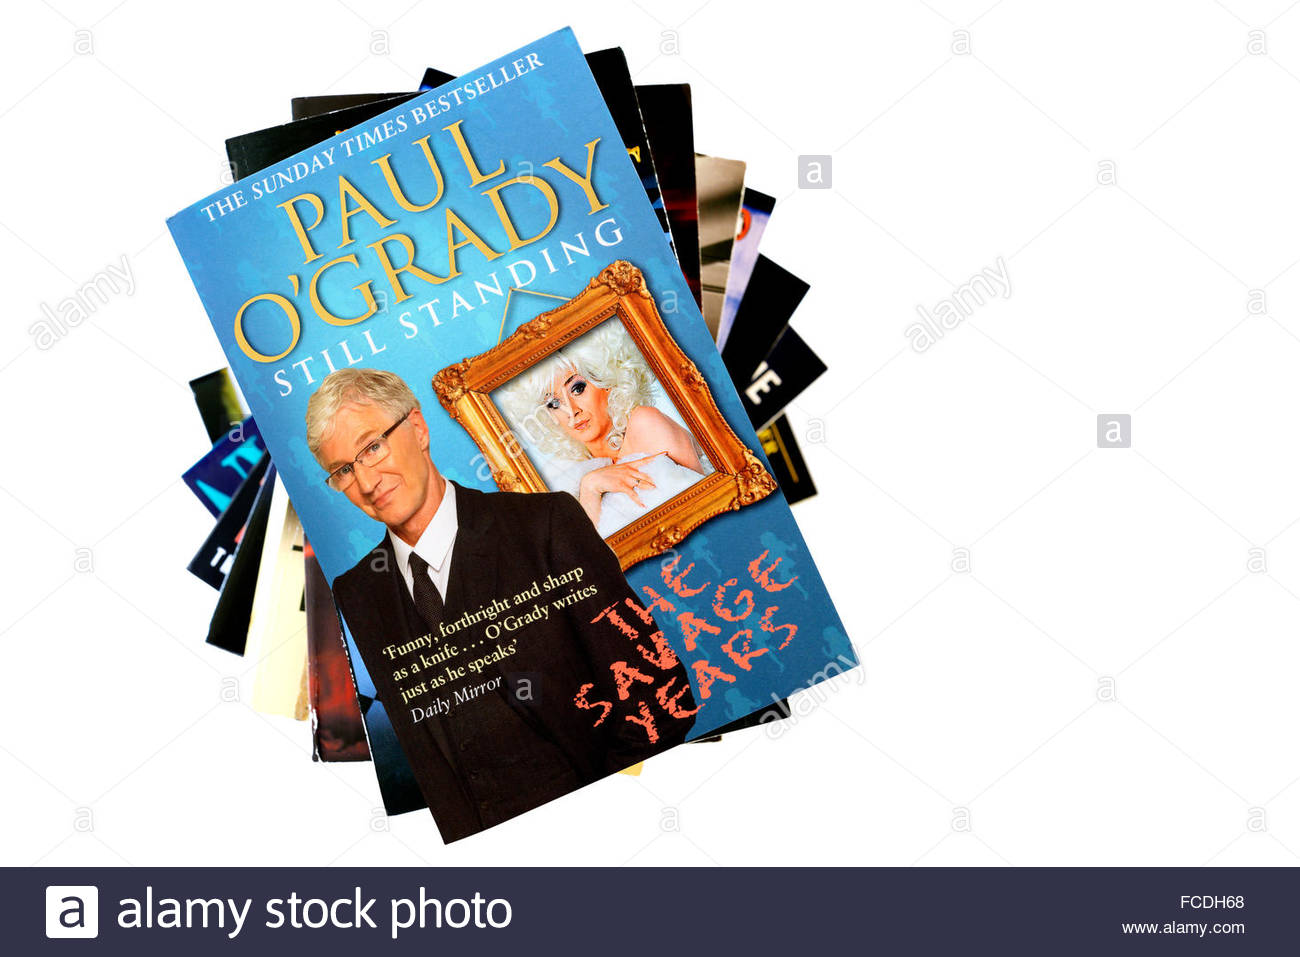 Paul O'Grady 2012 autobiography Still Standing, stacked used books, England Stock Photo